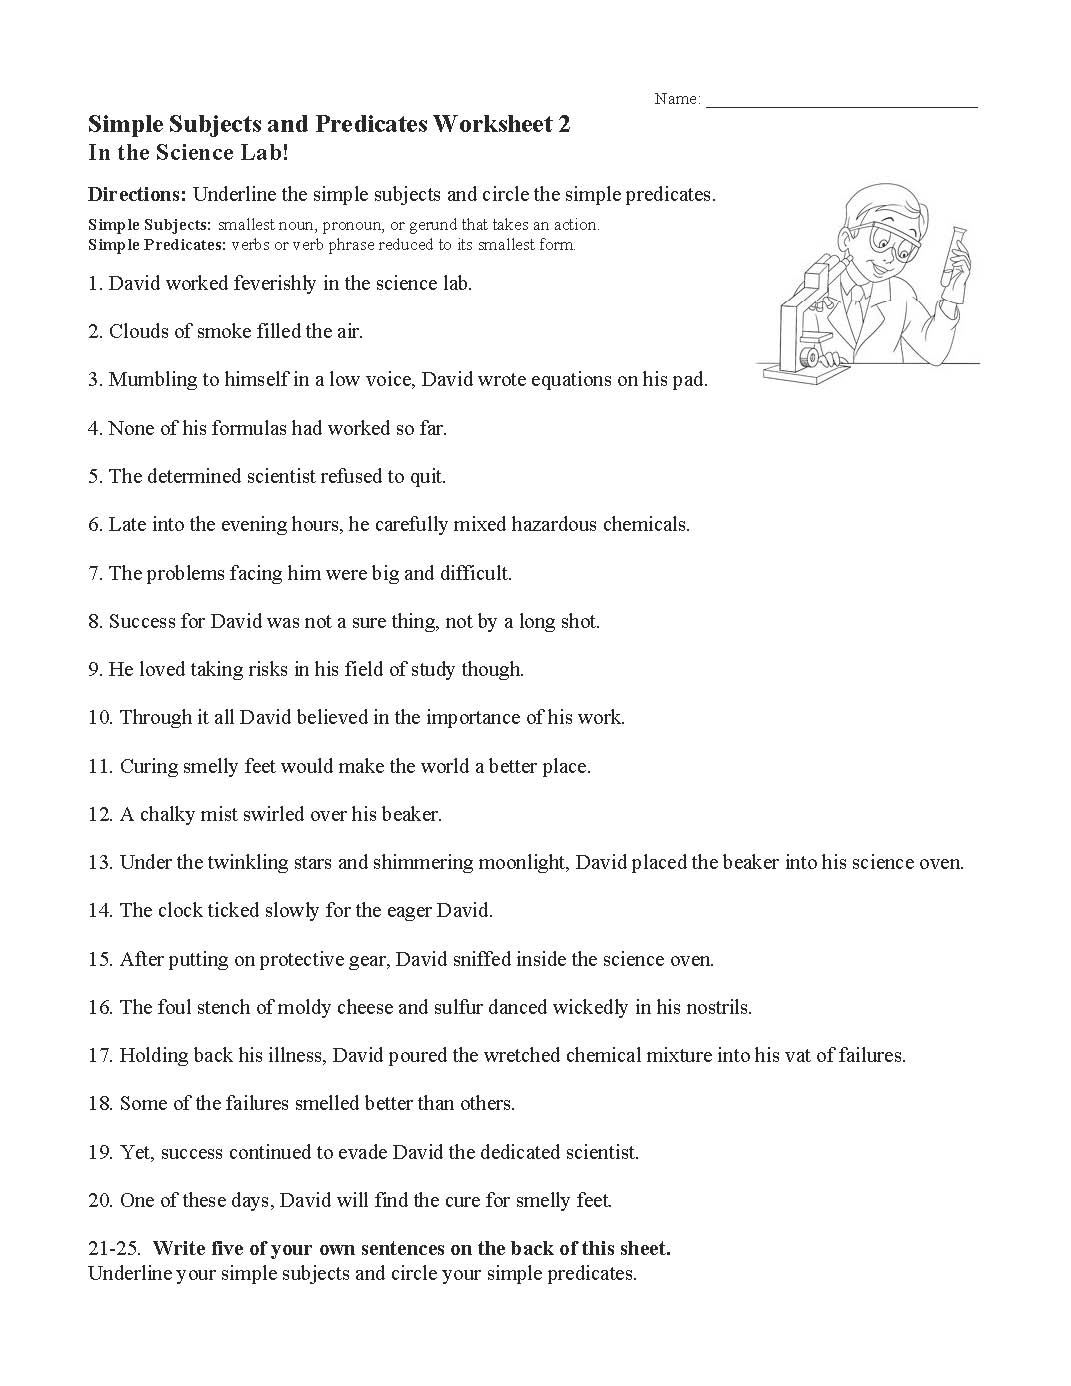 Simple Subjects And Predicates Worksheet 2